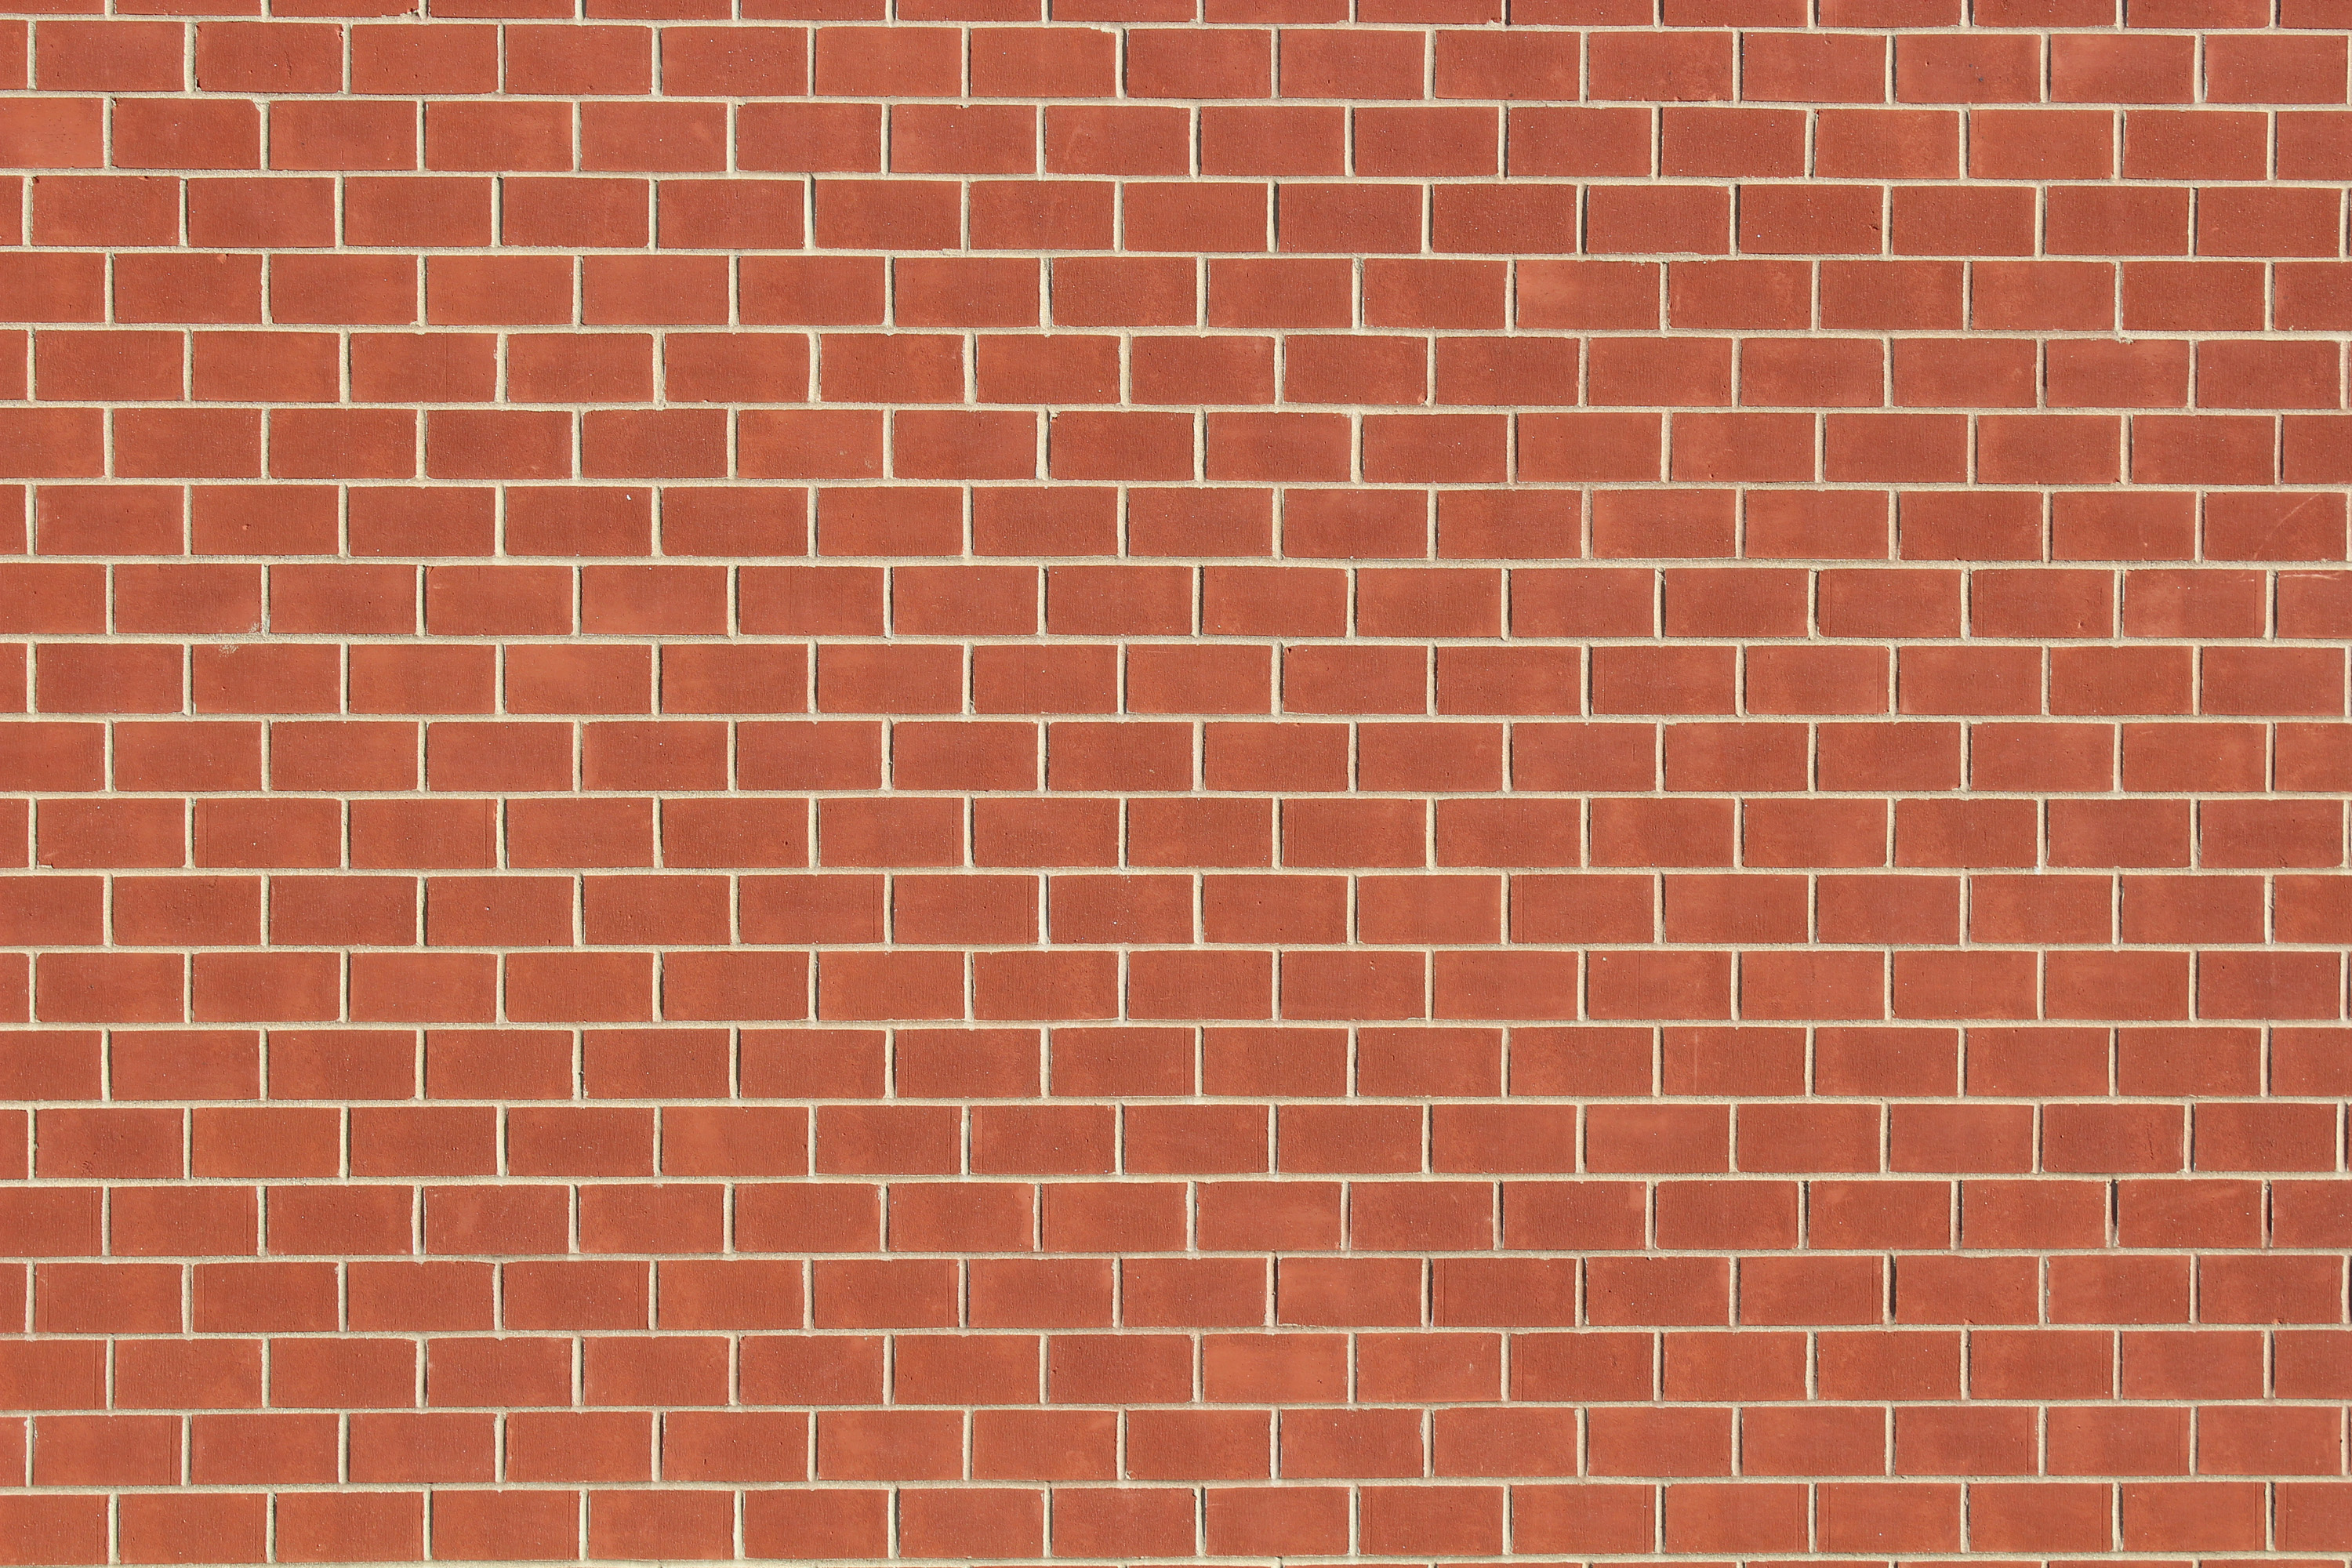 7 Brick Wall Texture Photoshop Images